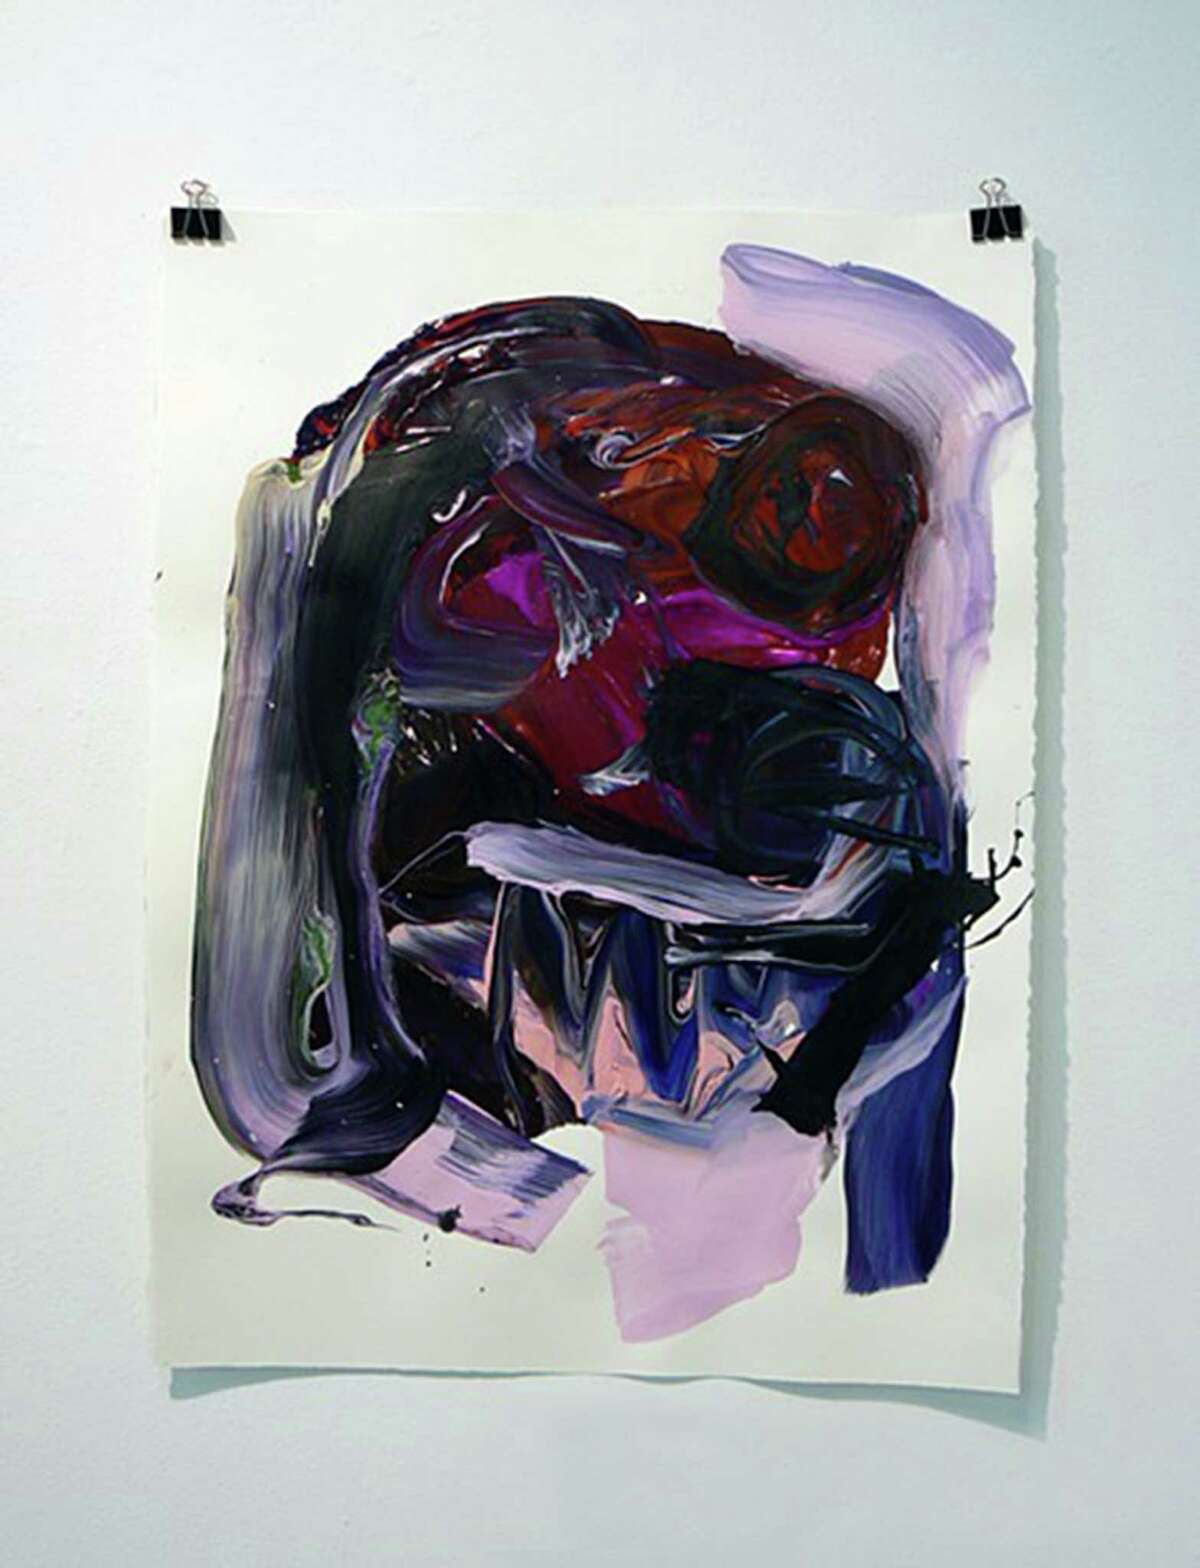 """""""Yow blue and pink"""" is among the works by Raychael Stine on view in her first Houston exhibit, """"a little ways away from everywhere,"""" on view through Dec. 21 at Art Palace."""